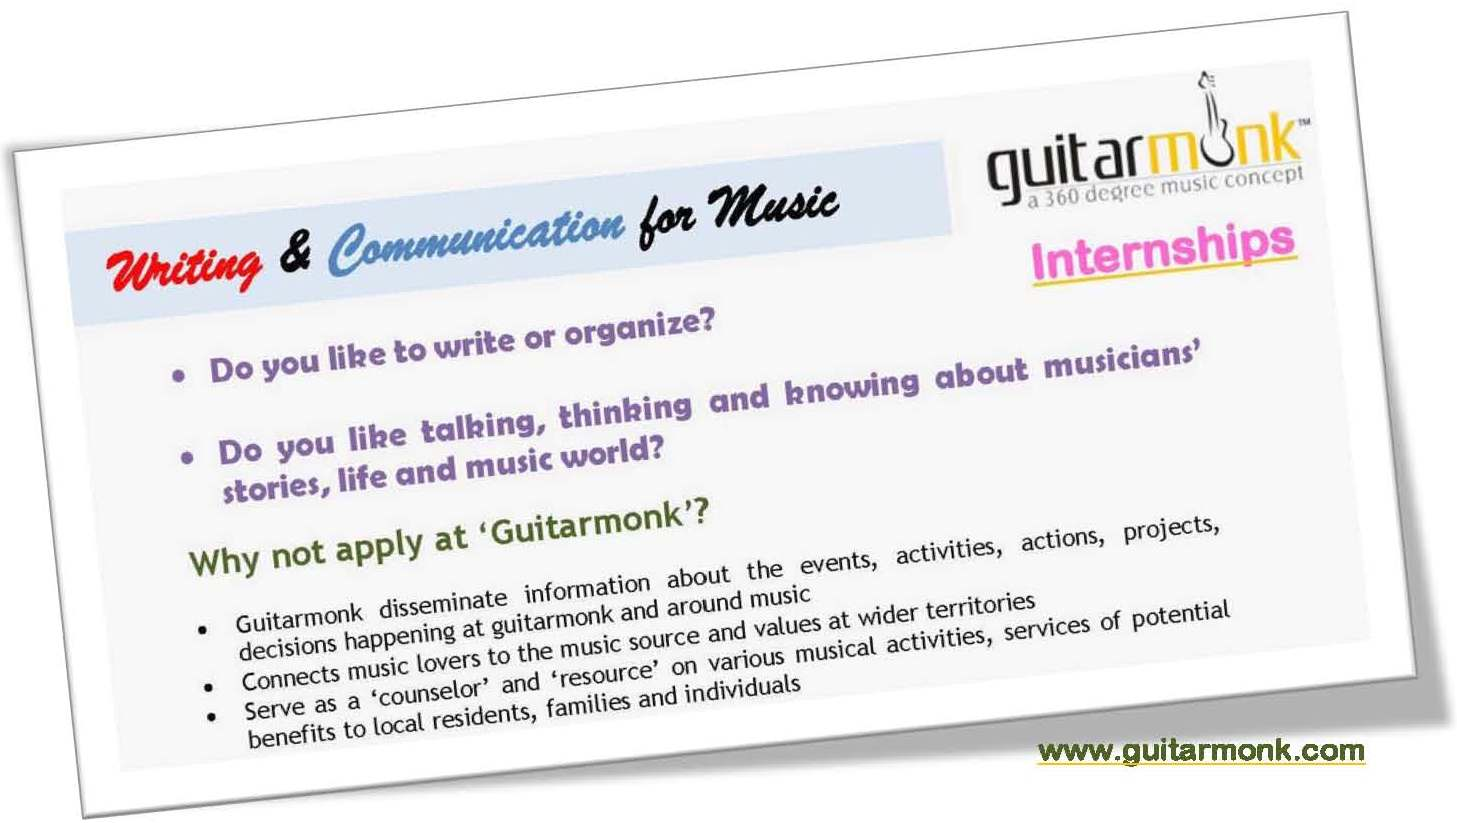 Writing and Communication for Music, Internships in